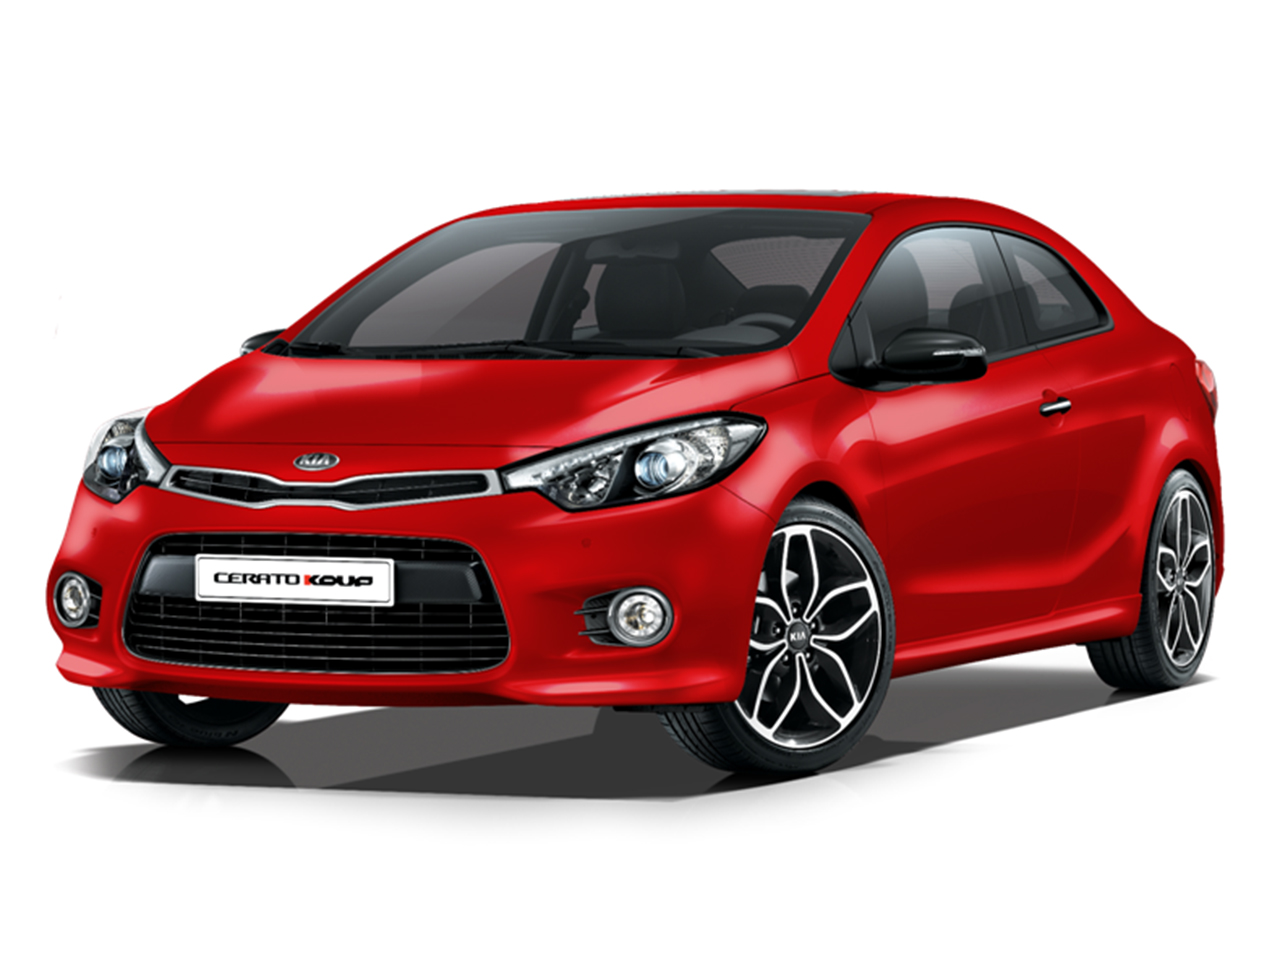 2018 Kia Cerato Koup Prices In Saudi Arabia Gulf Specs